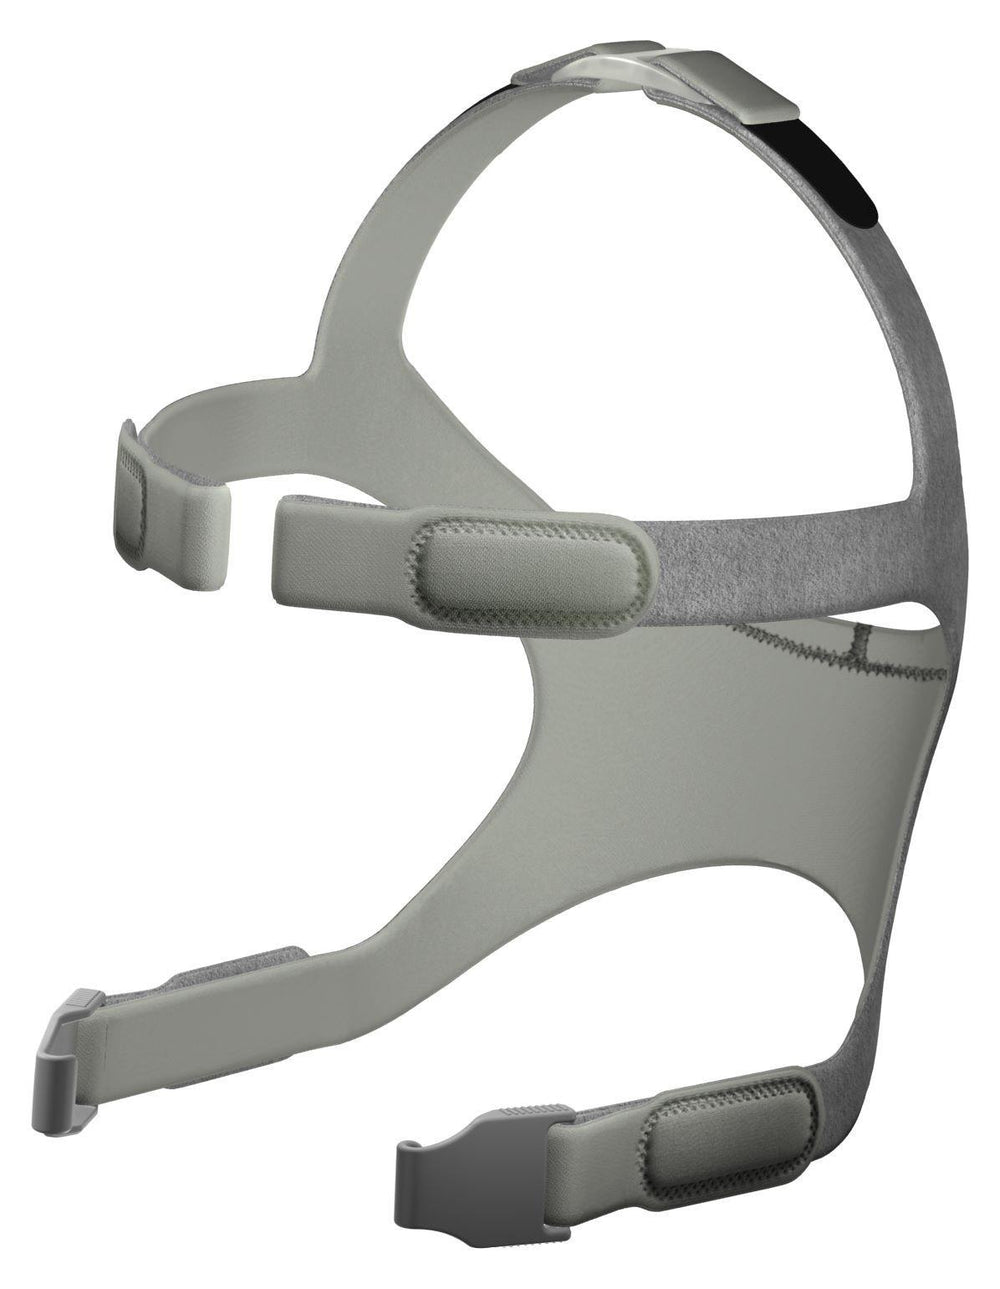 Simplus Headgear for Fisher & Paykel Full Face CPAP Mask